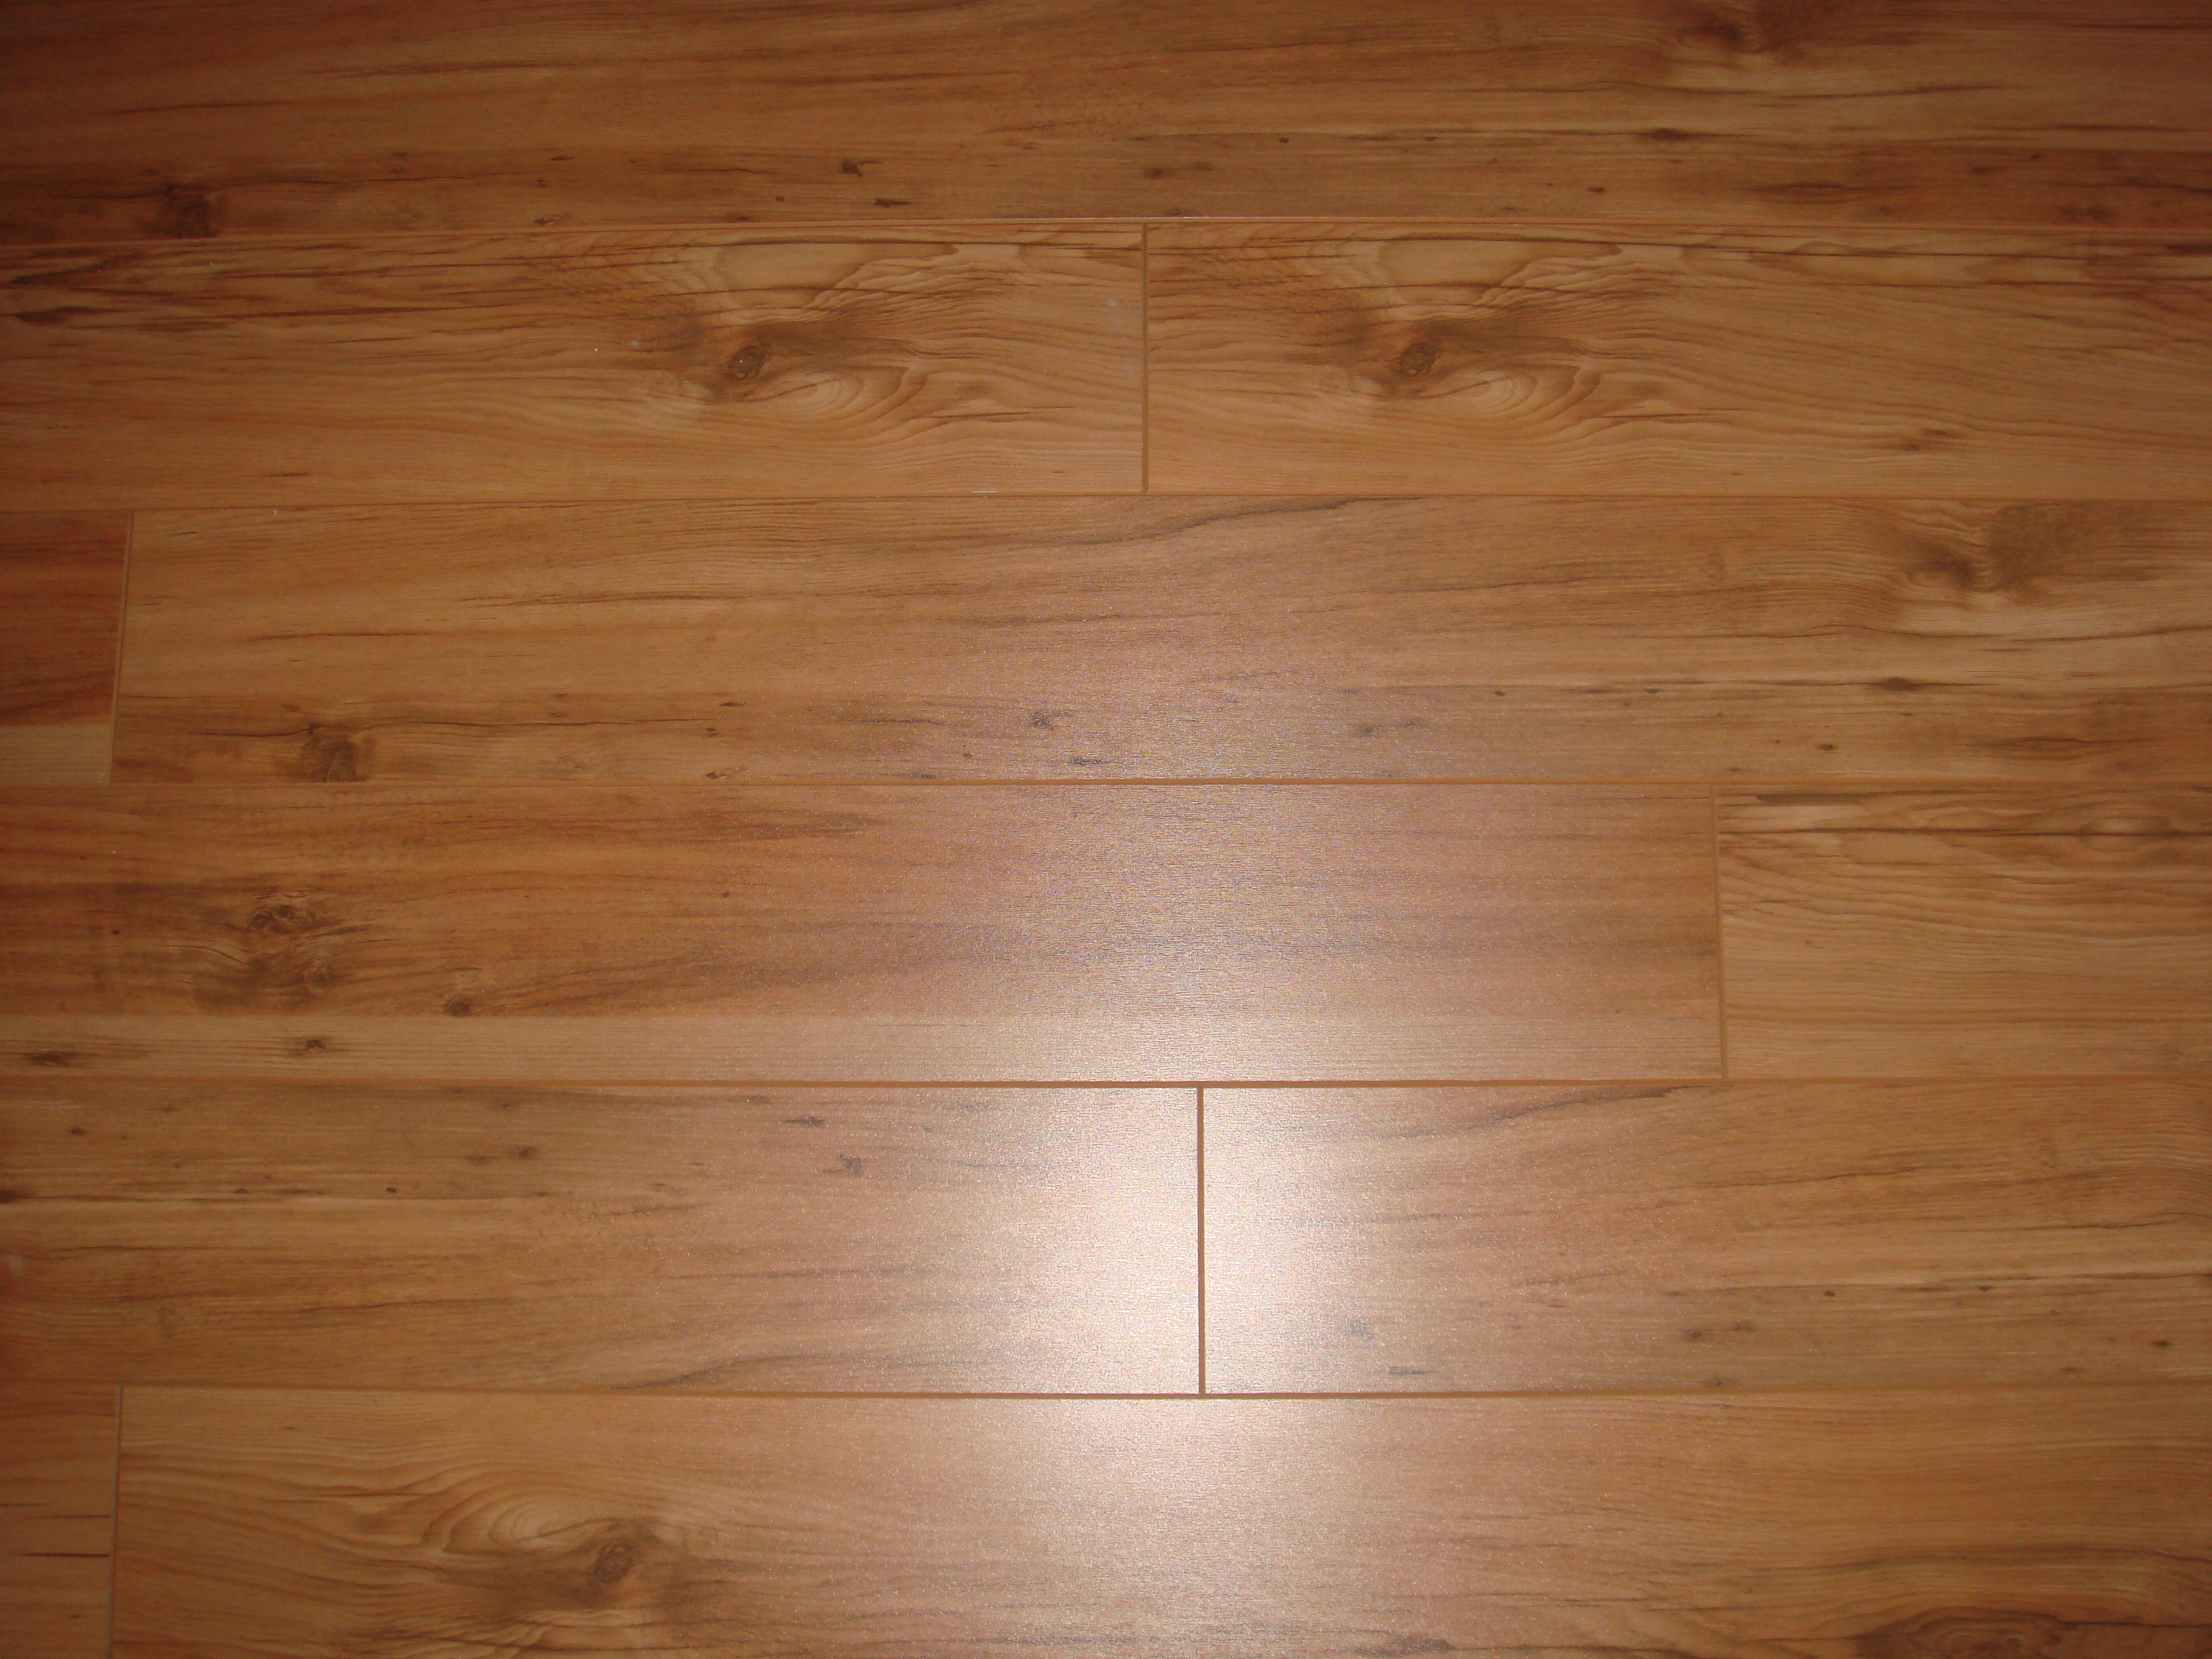 Wood Flooring Options Laminate Wood Flooring Options